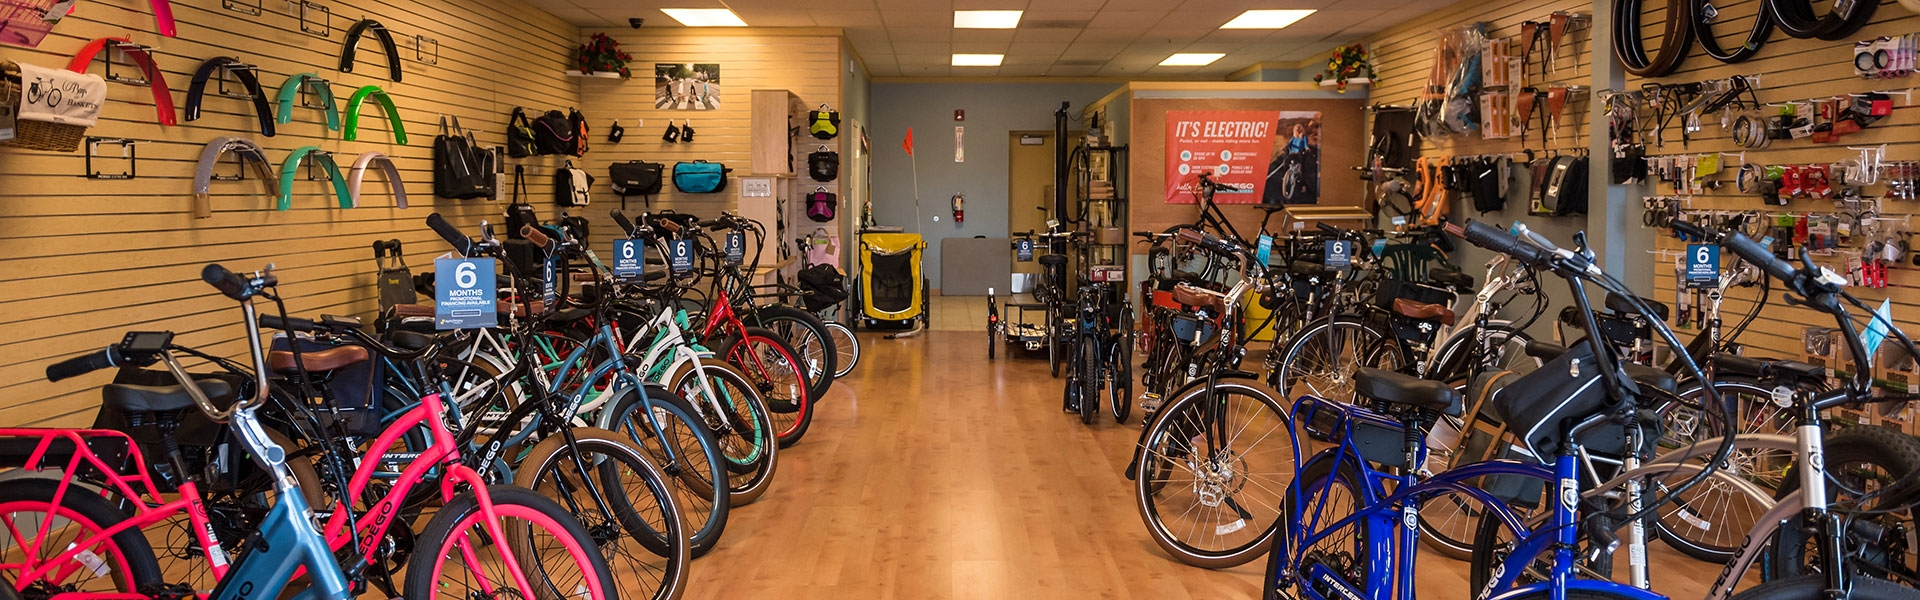 Practical Cycle Pedal Stop Bike Rentals and Servic (@practicalcycleca) Cover Image